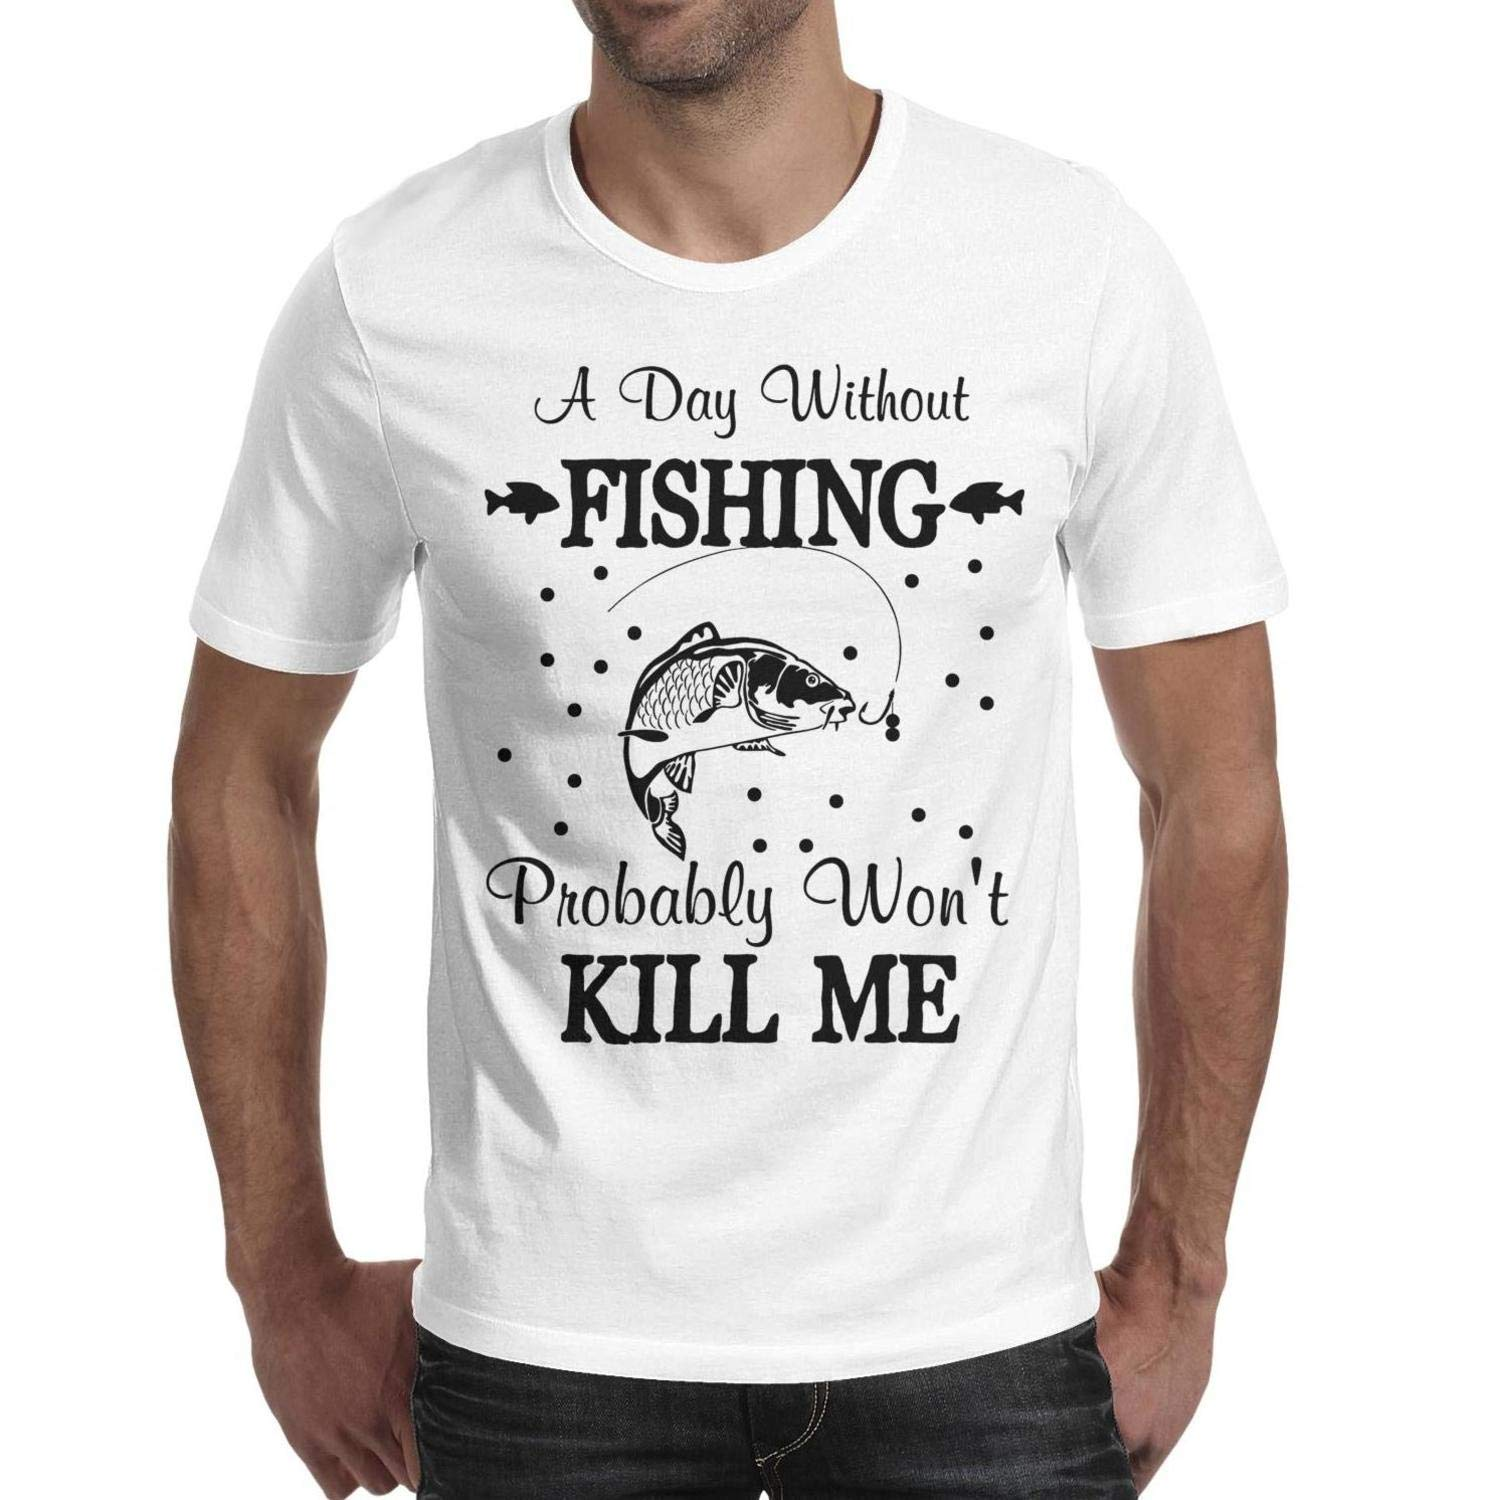 Man A Day Without Fishing Probably Wont Kill Me Black Funny Family Loose T Shirt